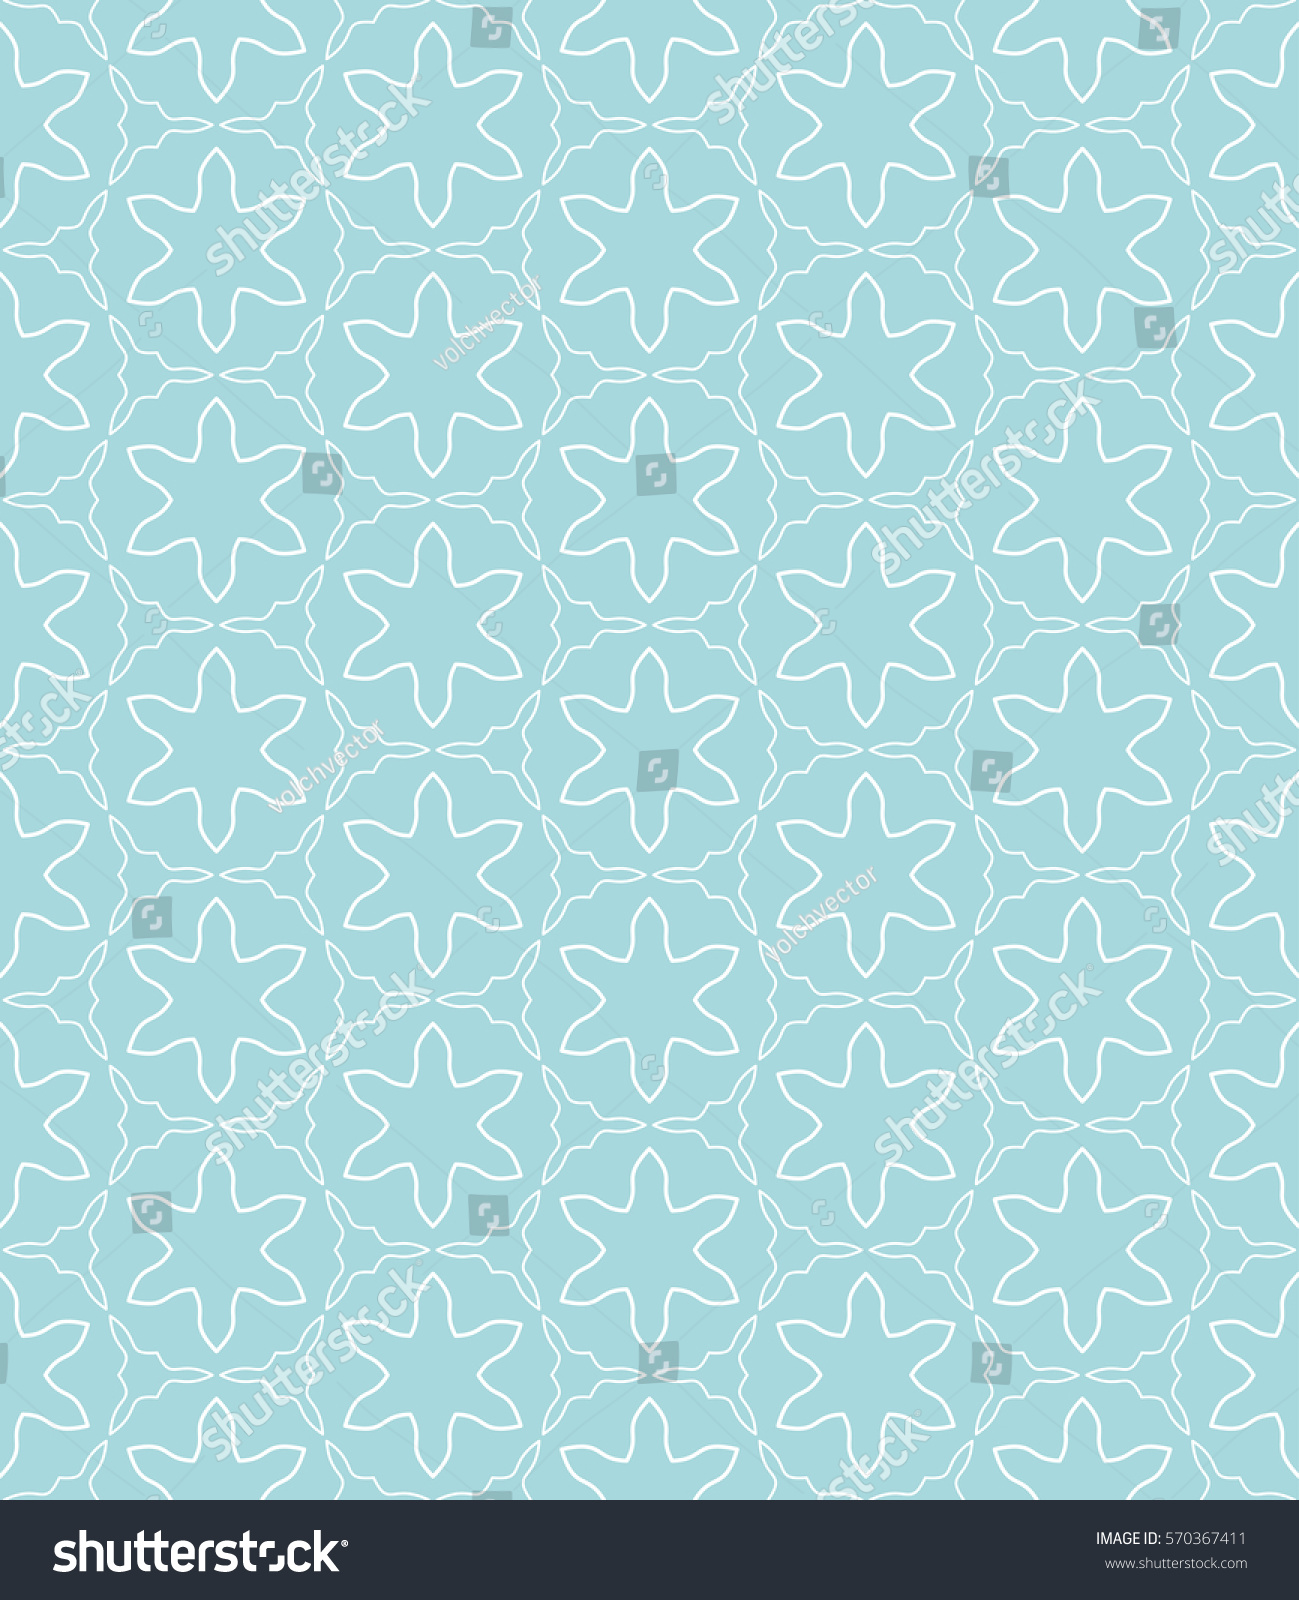 Line Texture Design : Seamless geometric line pattern repeating texture stock